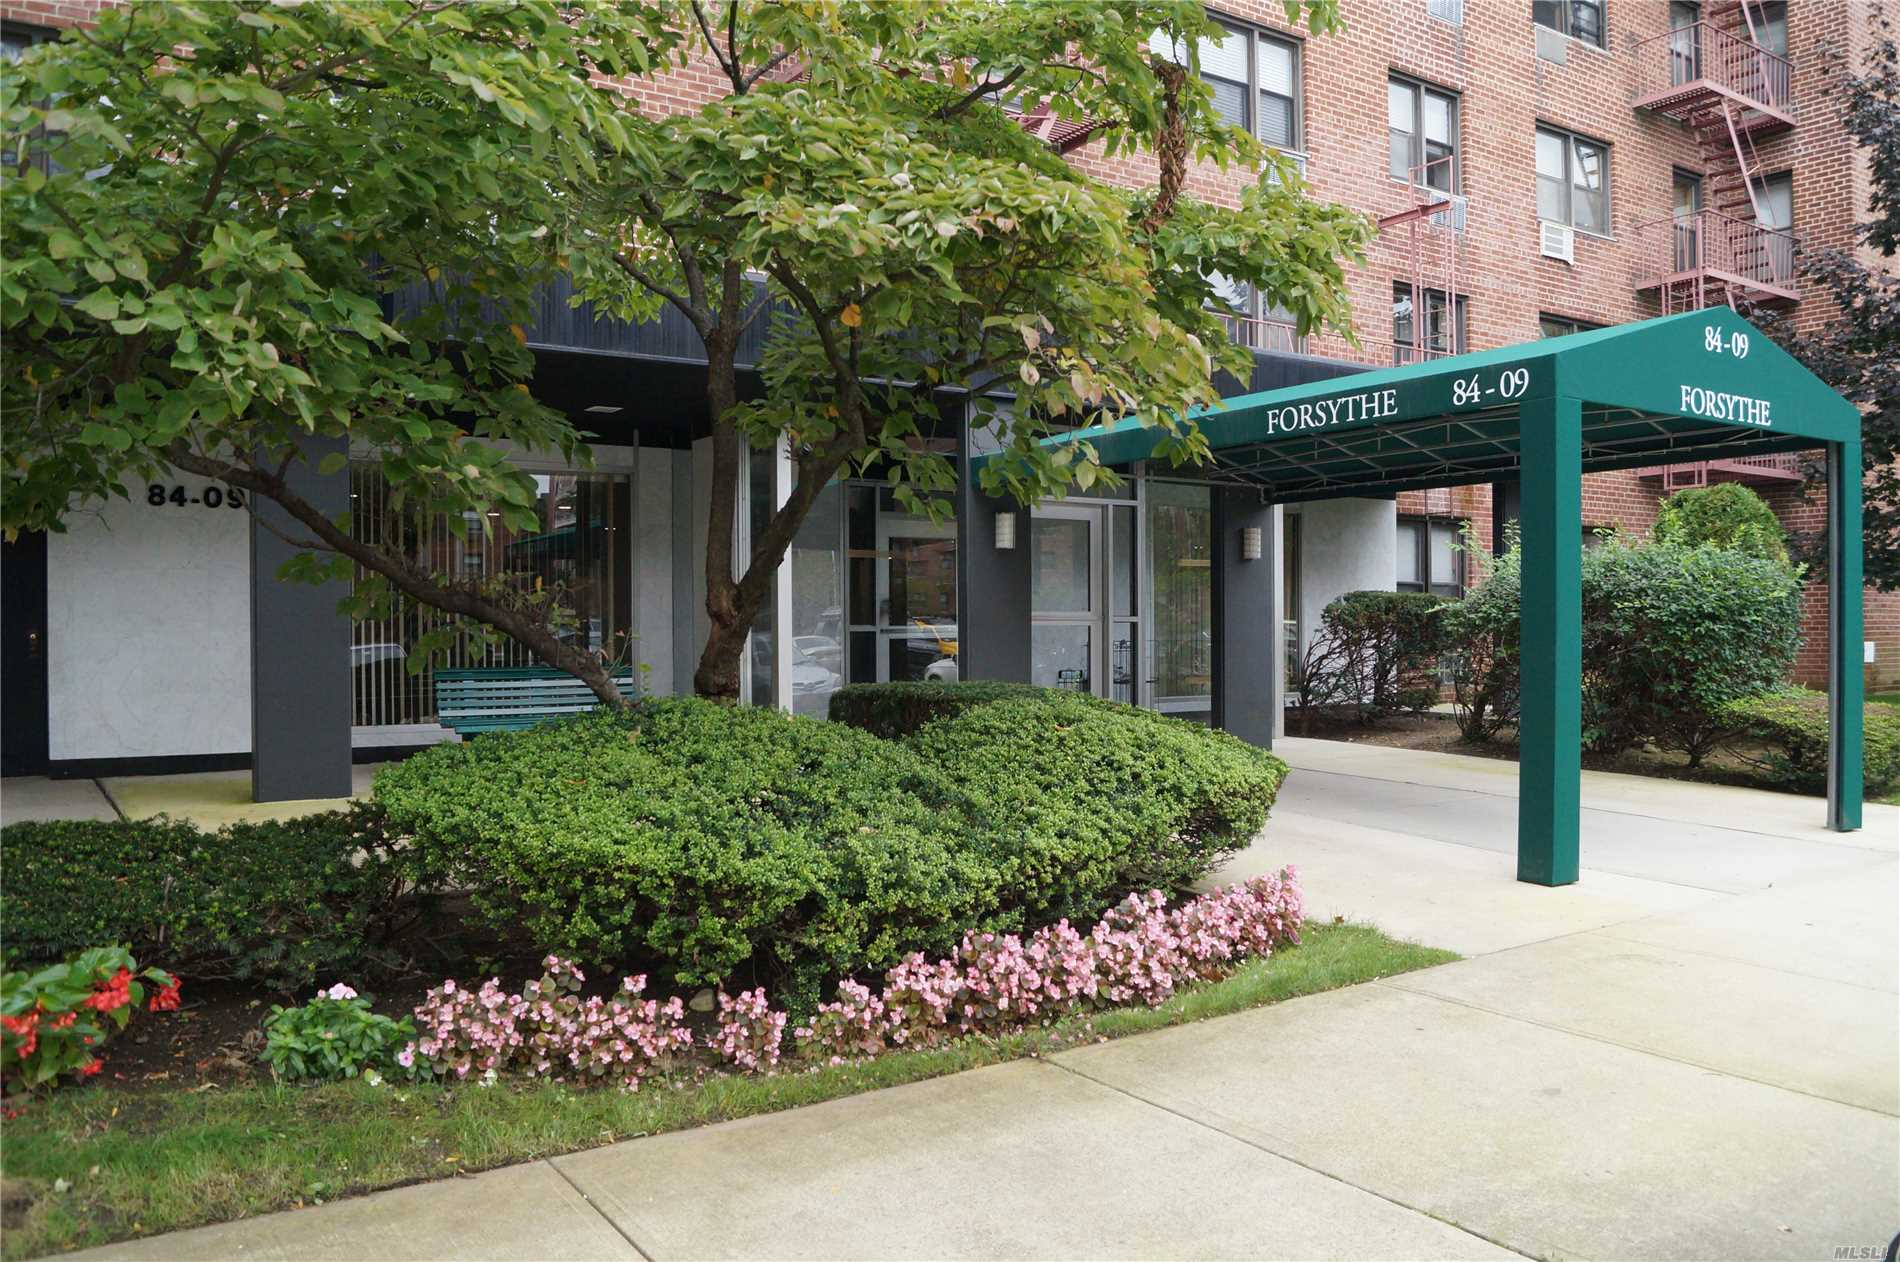 Immaculate L Shaped One Bedroom Studio Coop In The Lindenwood Section Of Popular Howard Beach. Walking Distance To All, Bus Stop, Shopping, Elementary School, Medical Offices And Dining. Minutes Away From Jfk Airport. Laundry Room On Every Floor! Lowest Flip Tax Than All Other Coop Complexes In The Area, Only $5 A Share! Unit Has 185 Shares.